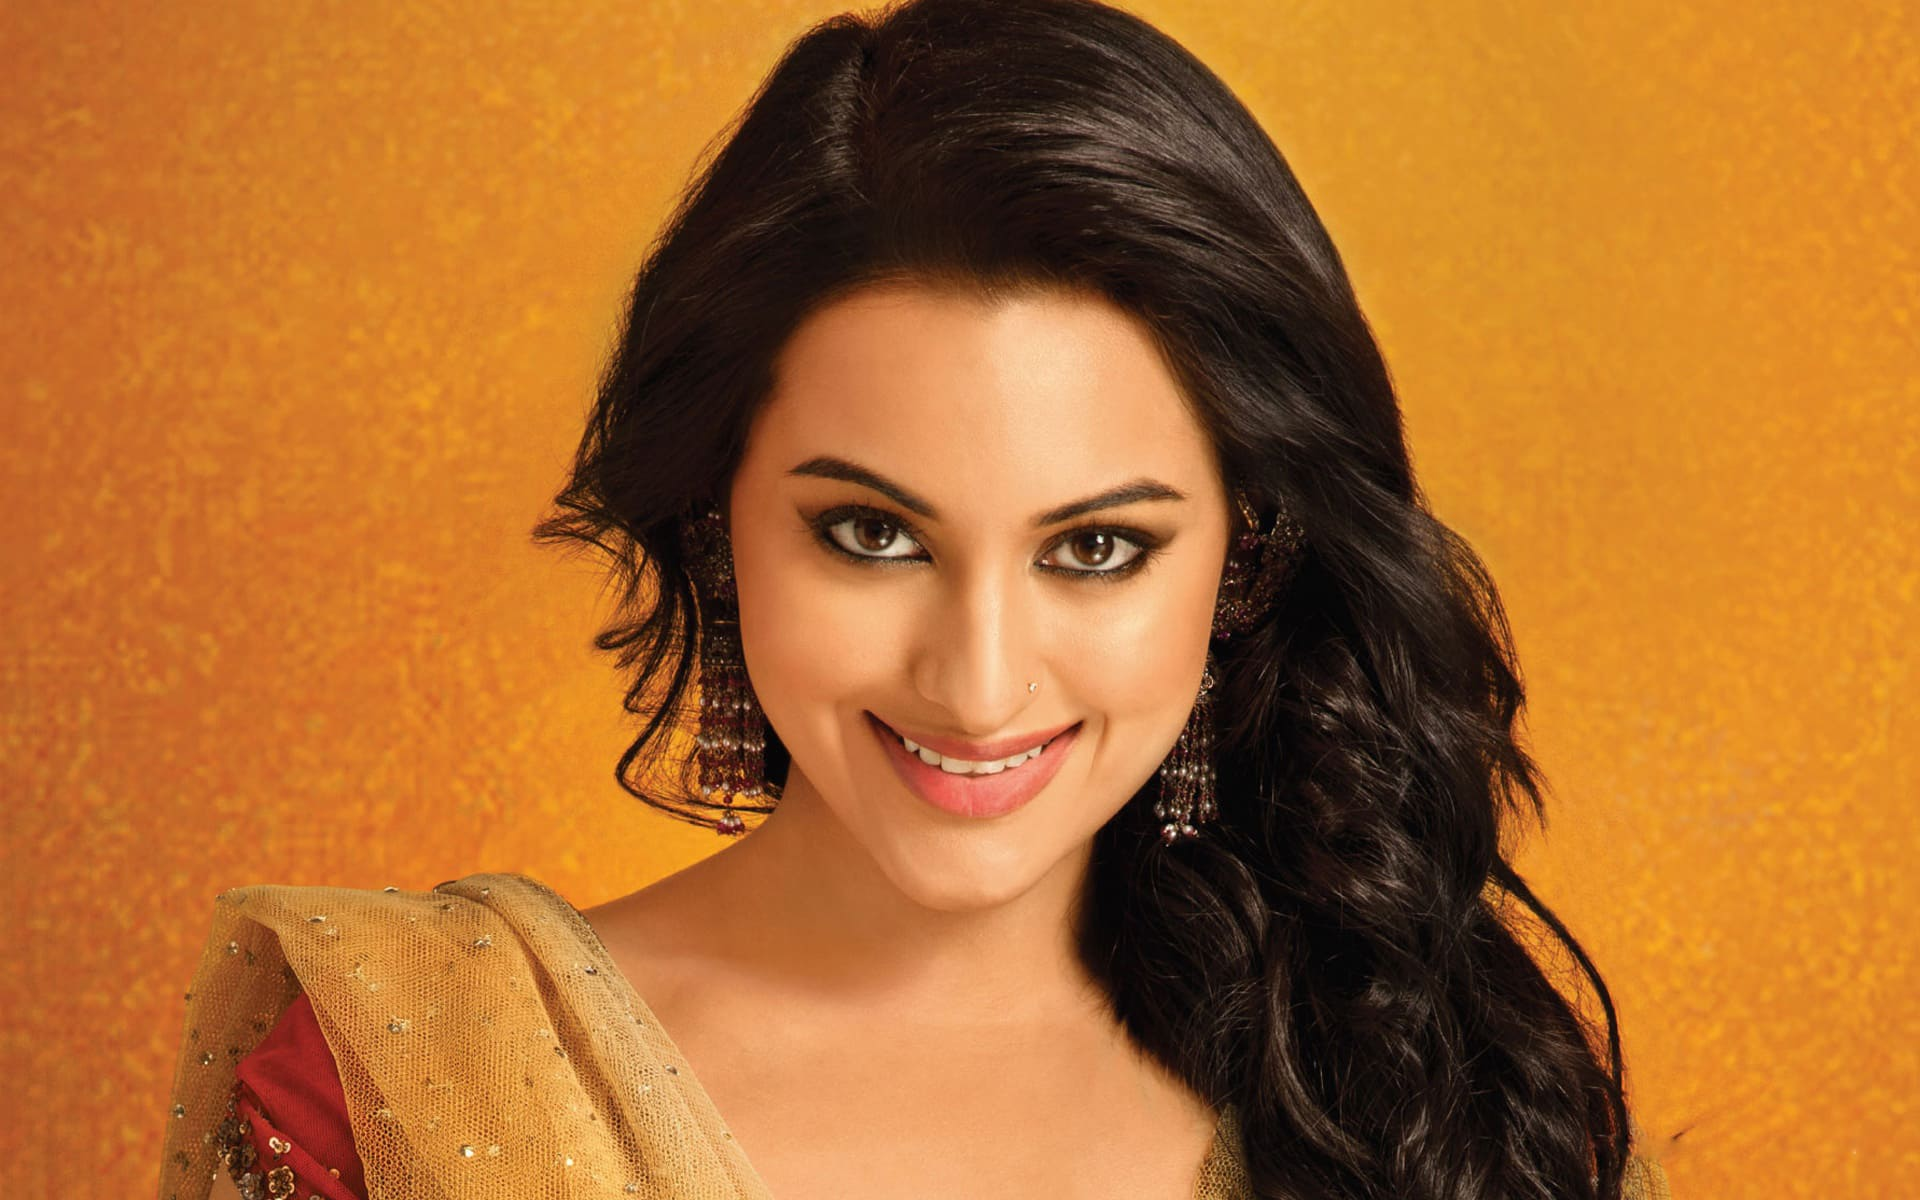 Sonakshi Sinha reveals how she fought body shaming and kept her focus